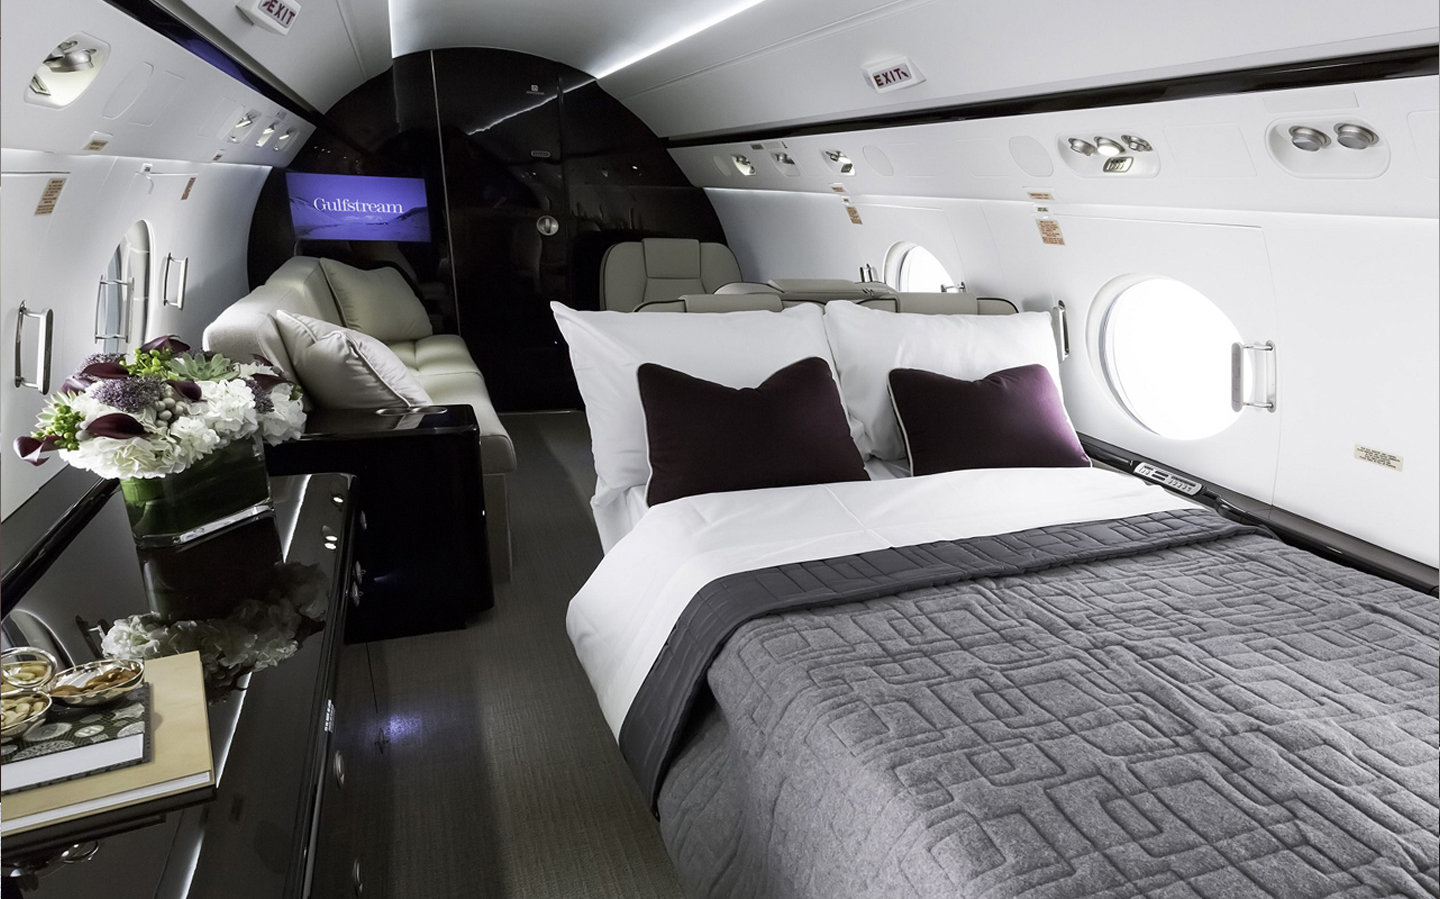 Heavy Jets with Beds